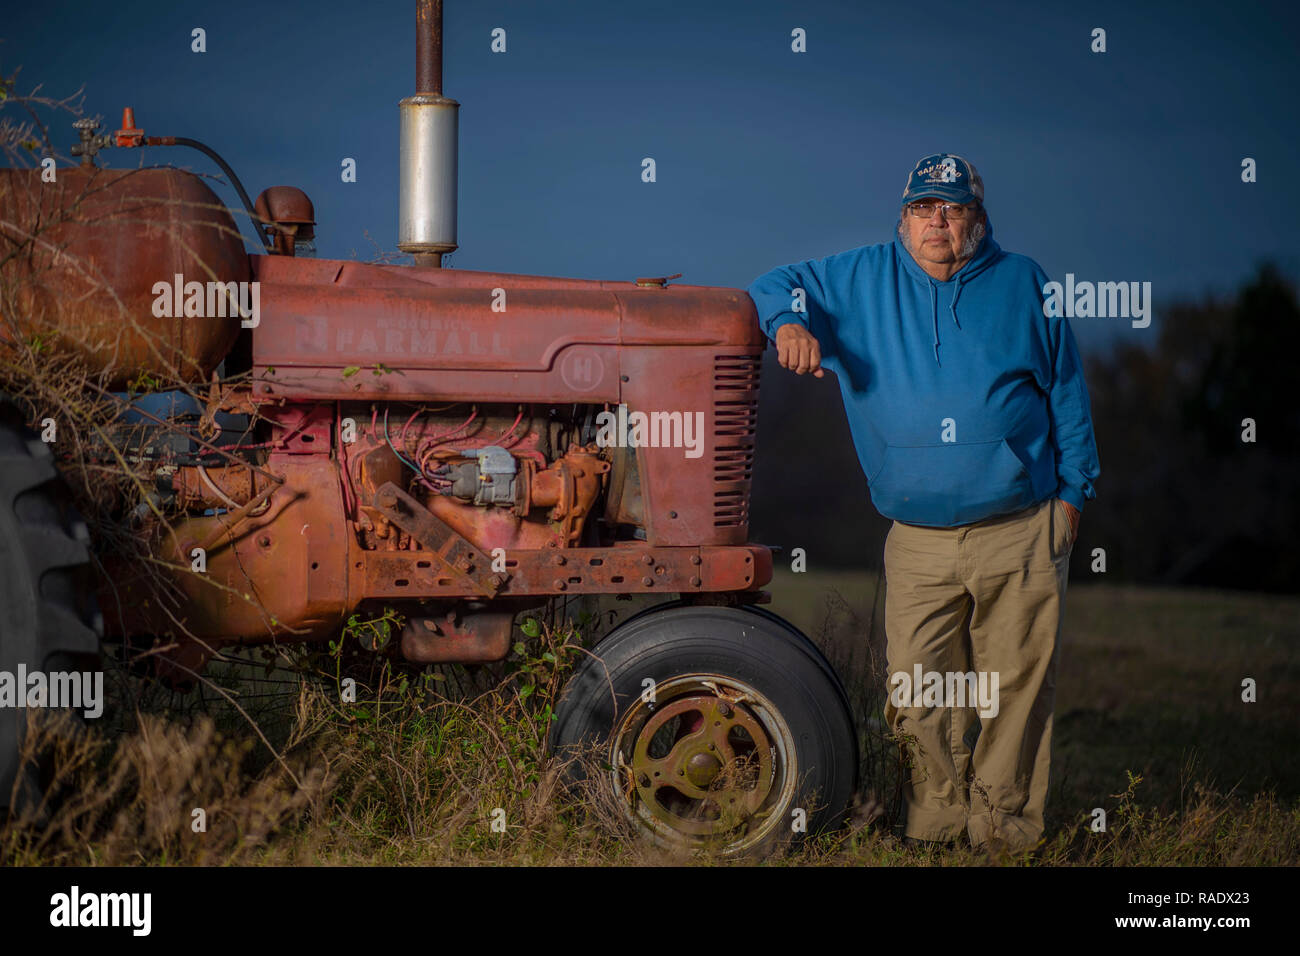 William Harrison, a multi-generational Native American rancher who raises 100 head of cattle on his farm in of Okfuskee County, Oklahoma. - Stock Image